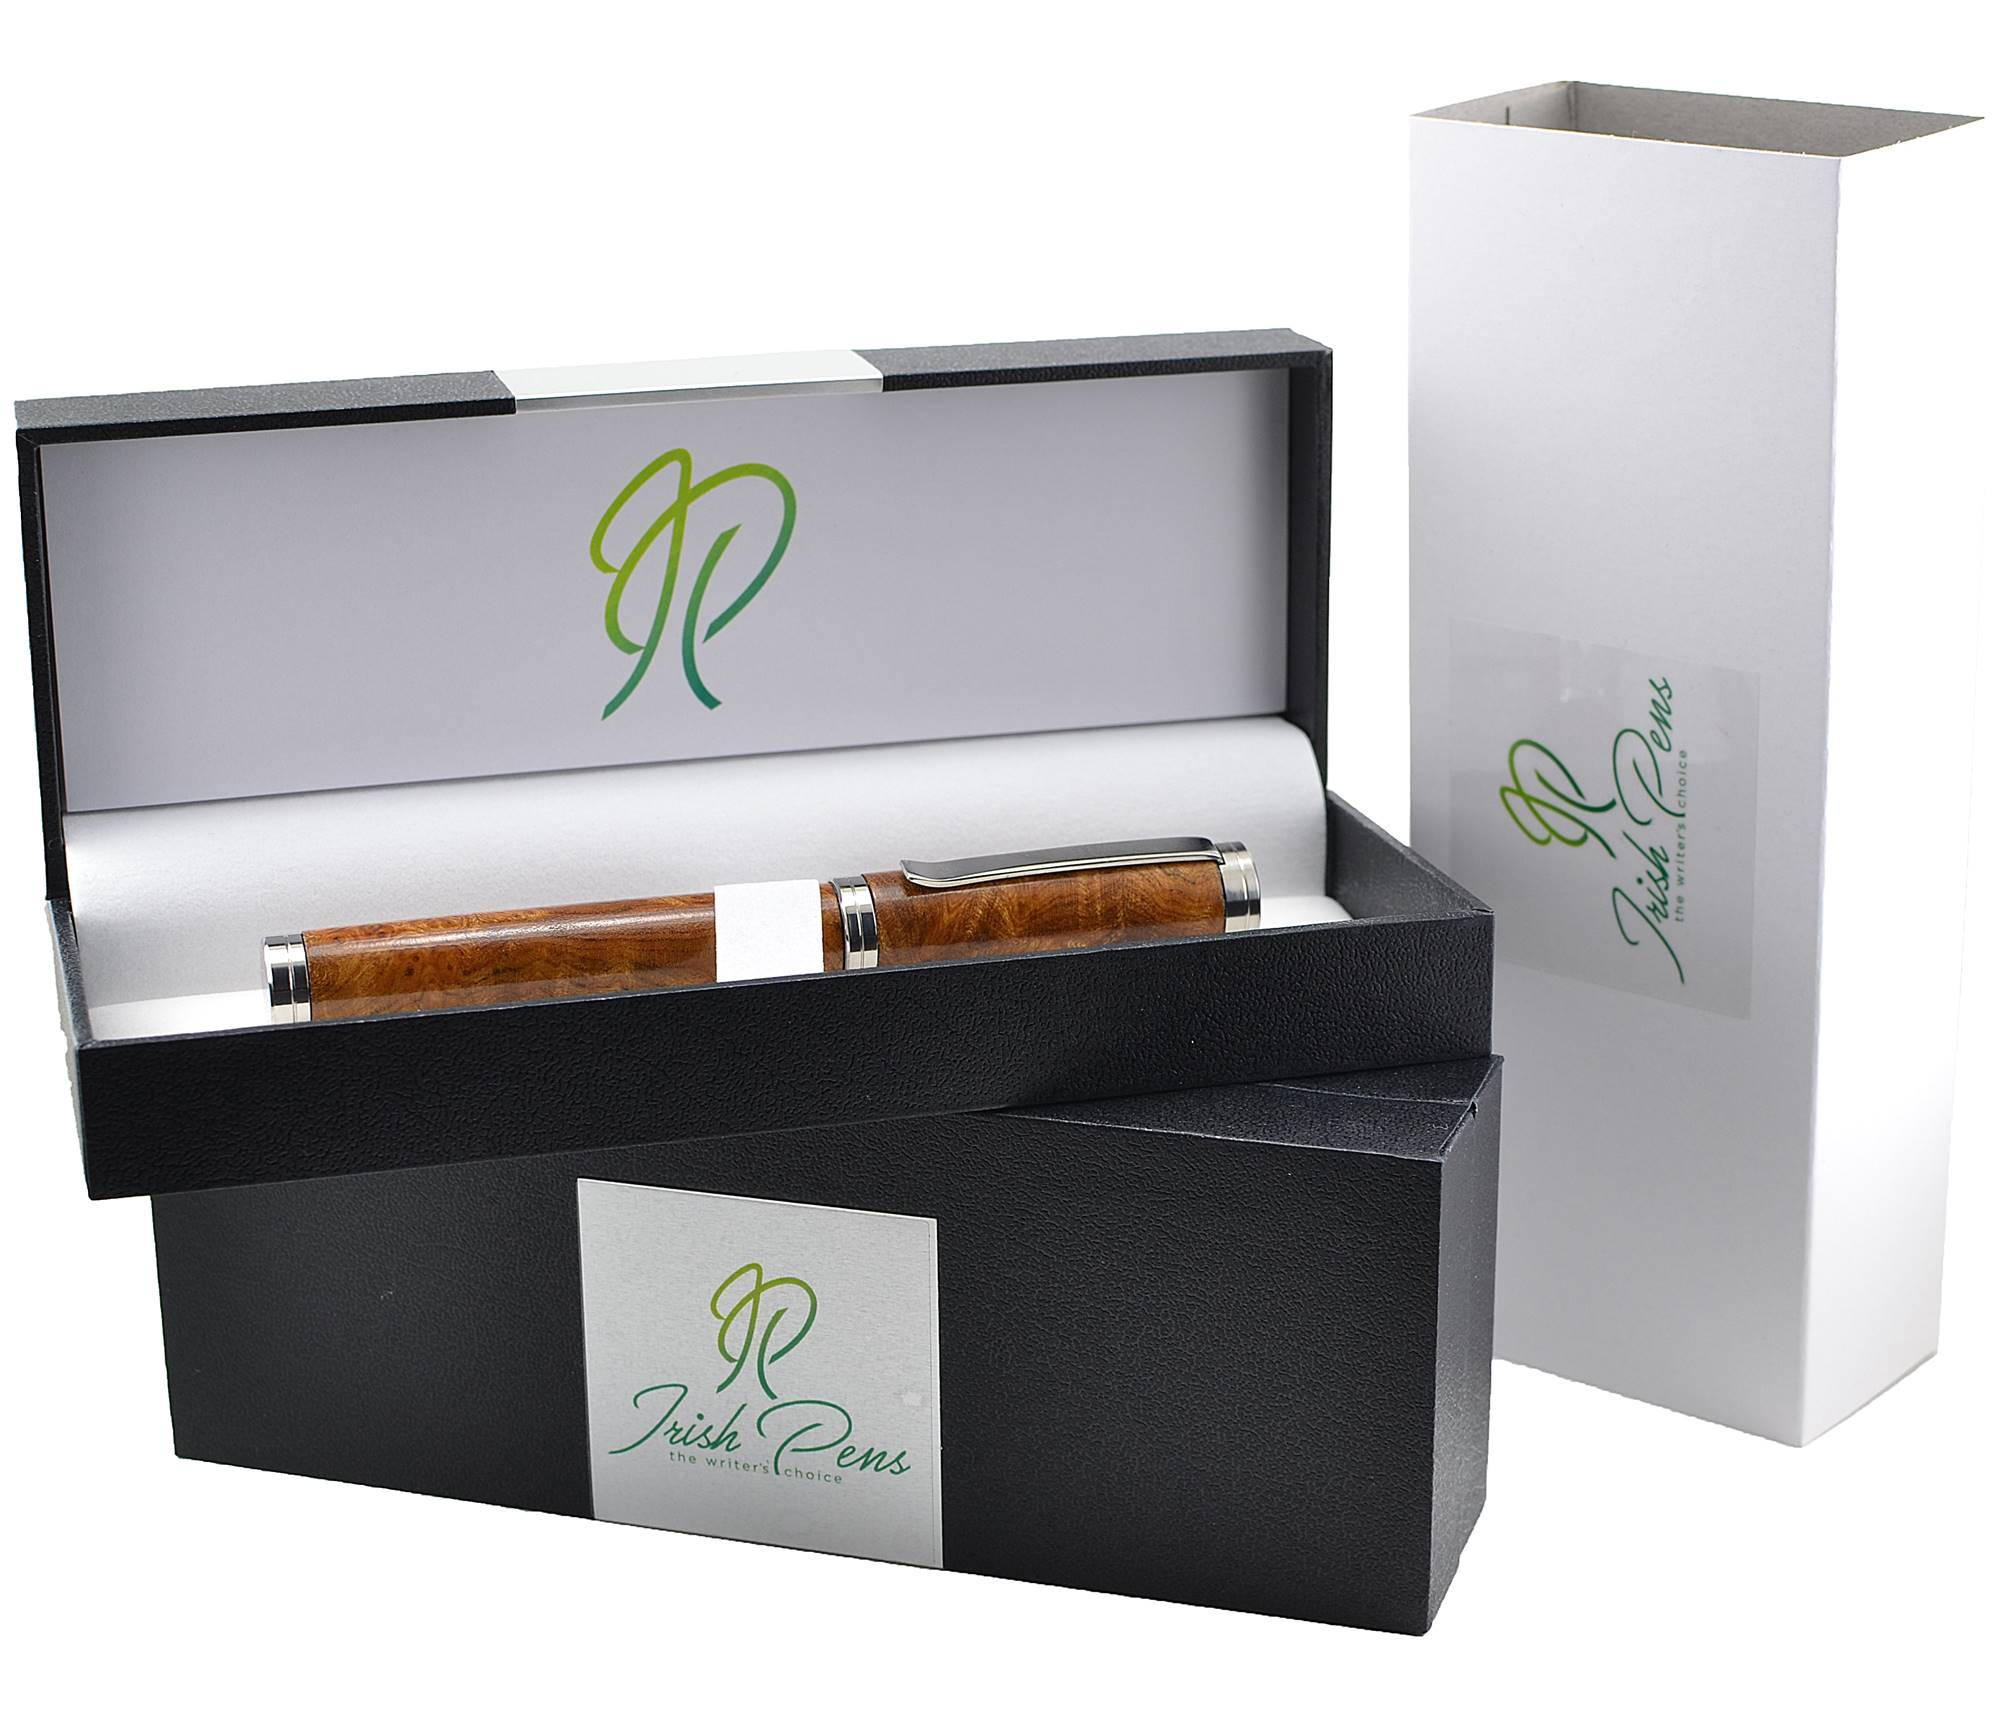 Fountain pen in gift box by Irish Pens